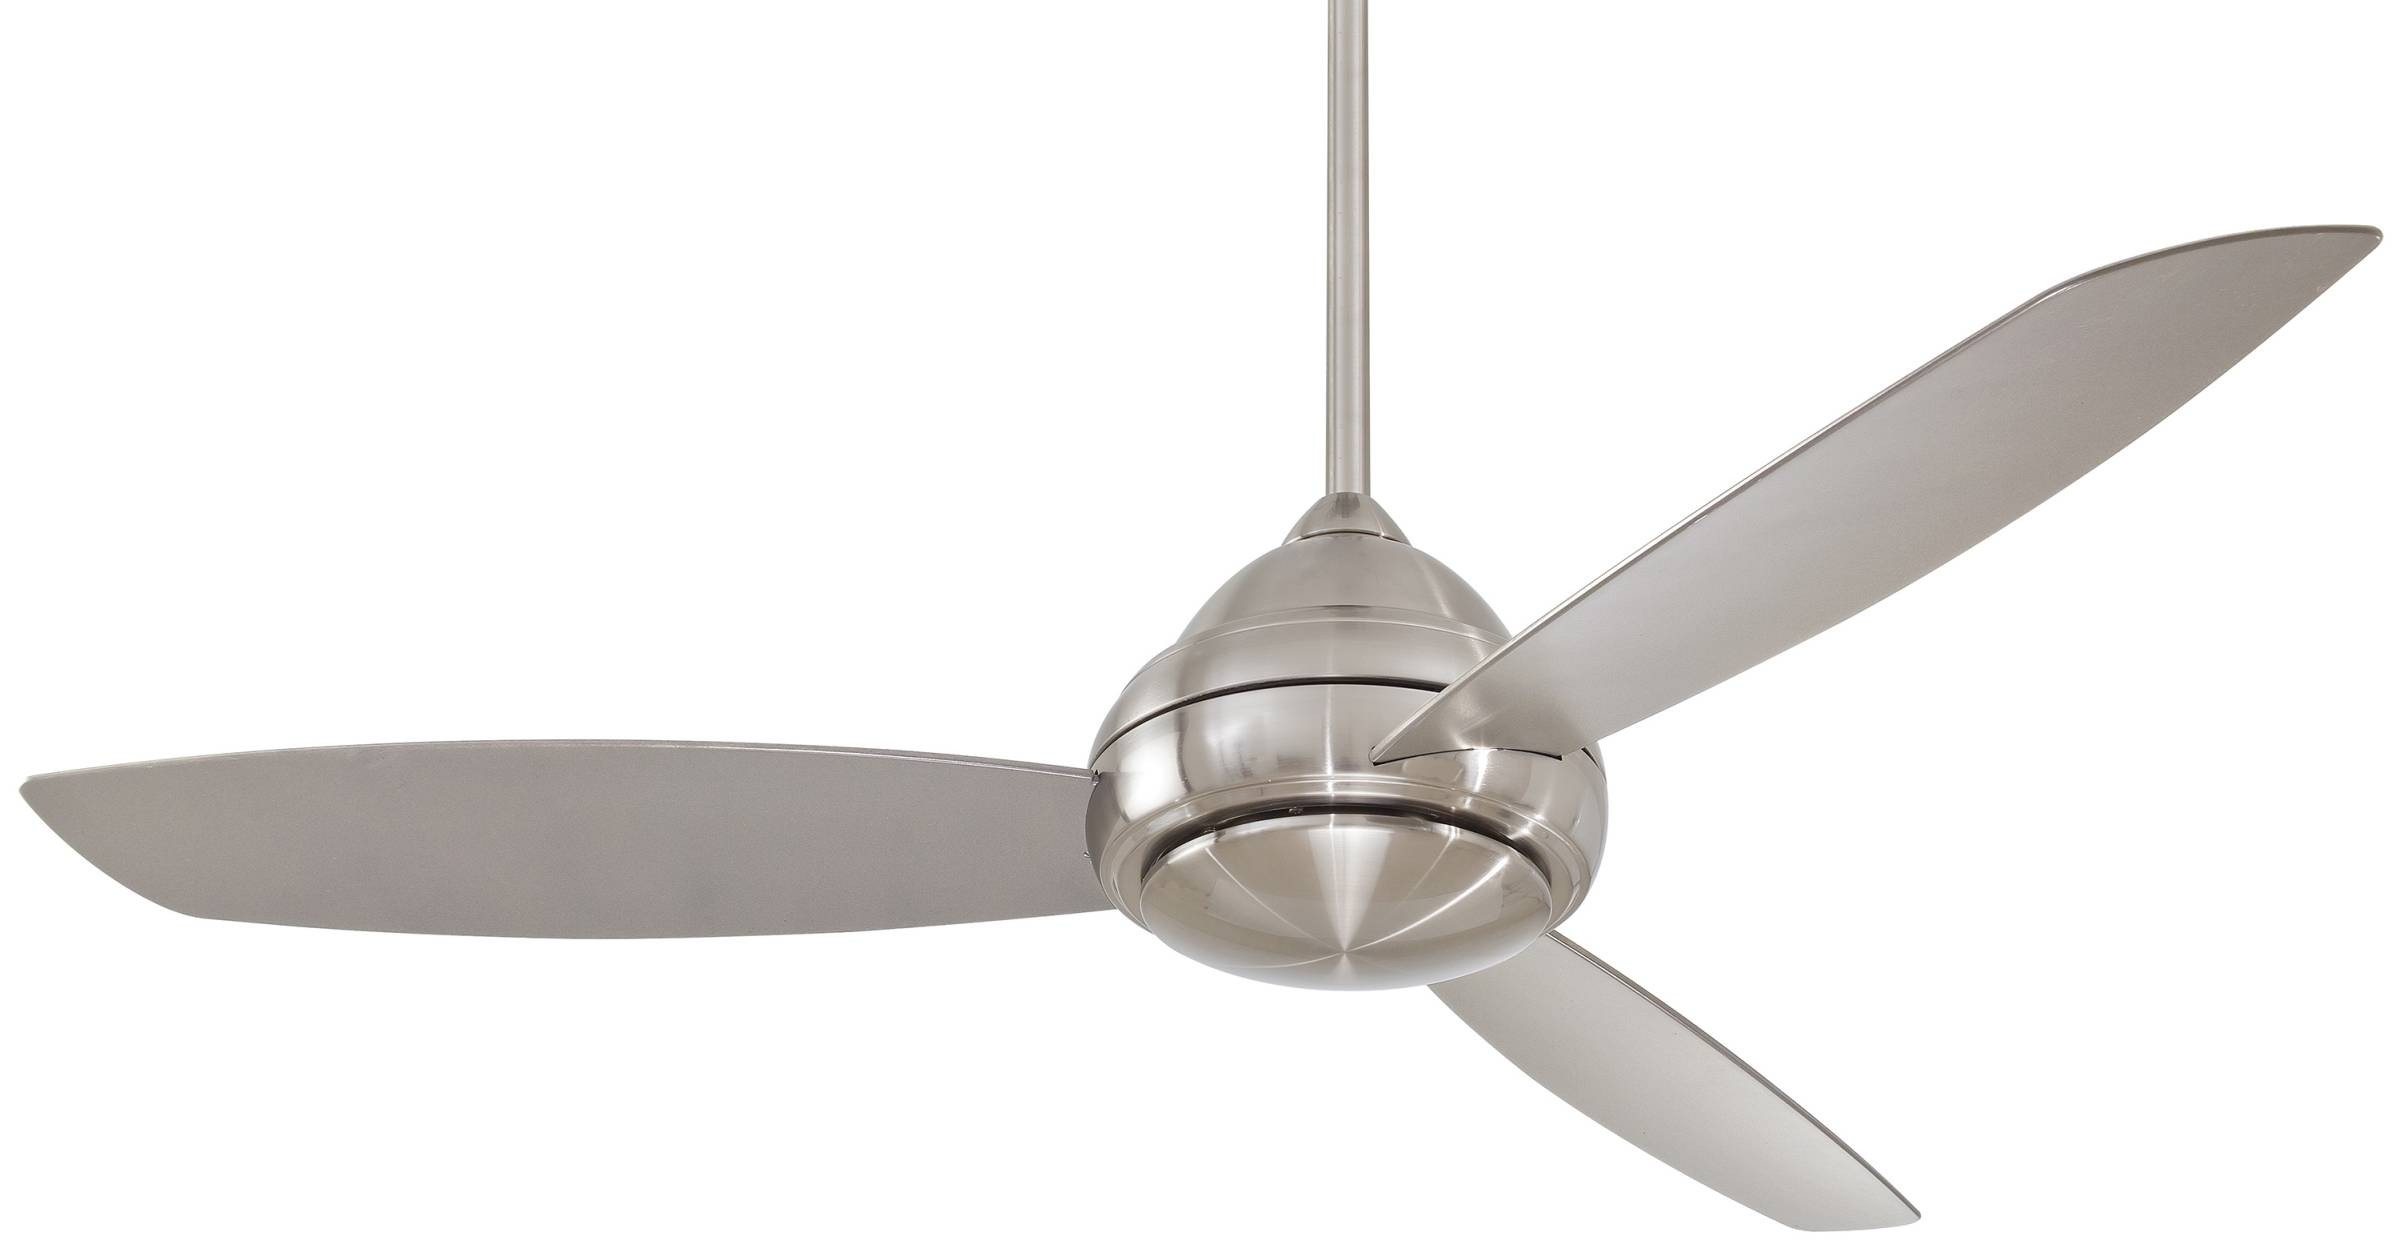 Outdoor Ceiling Fans With Wet Rated Lights Throughout Well Liked Outdoor Ceiling Fans – Choose Wet Rated Or Damp Rated For Your Space! (View 14 of 20)